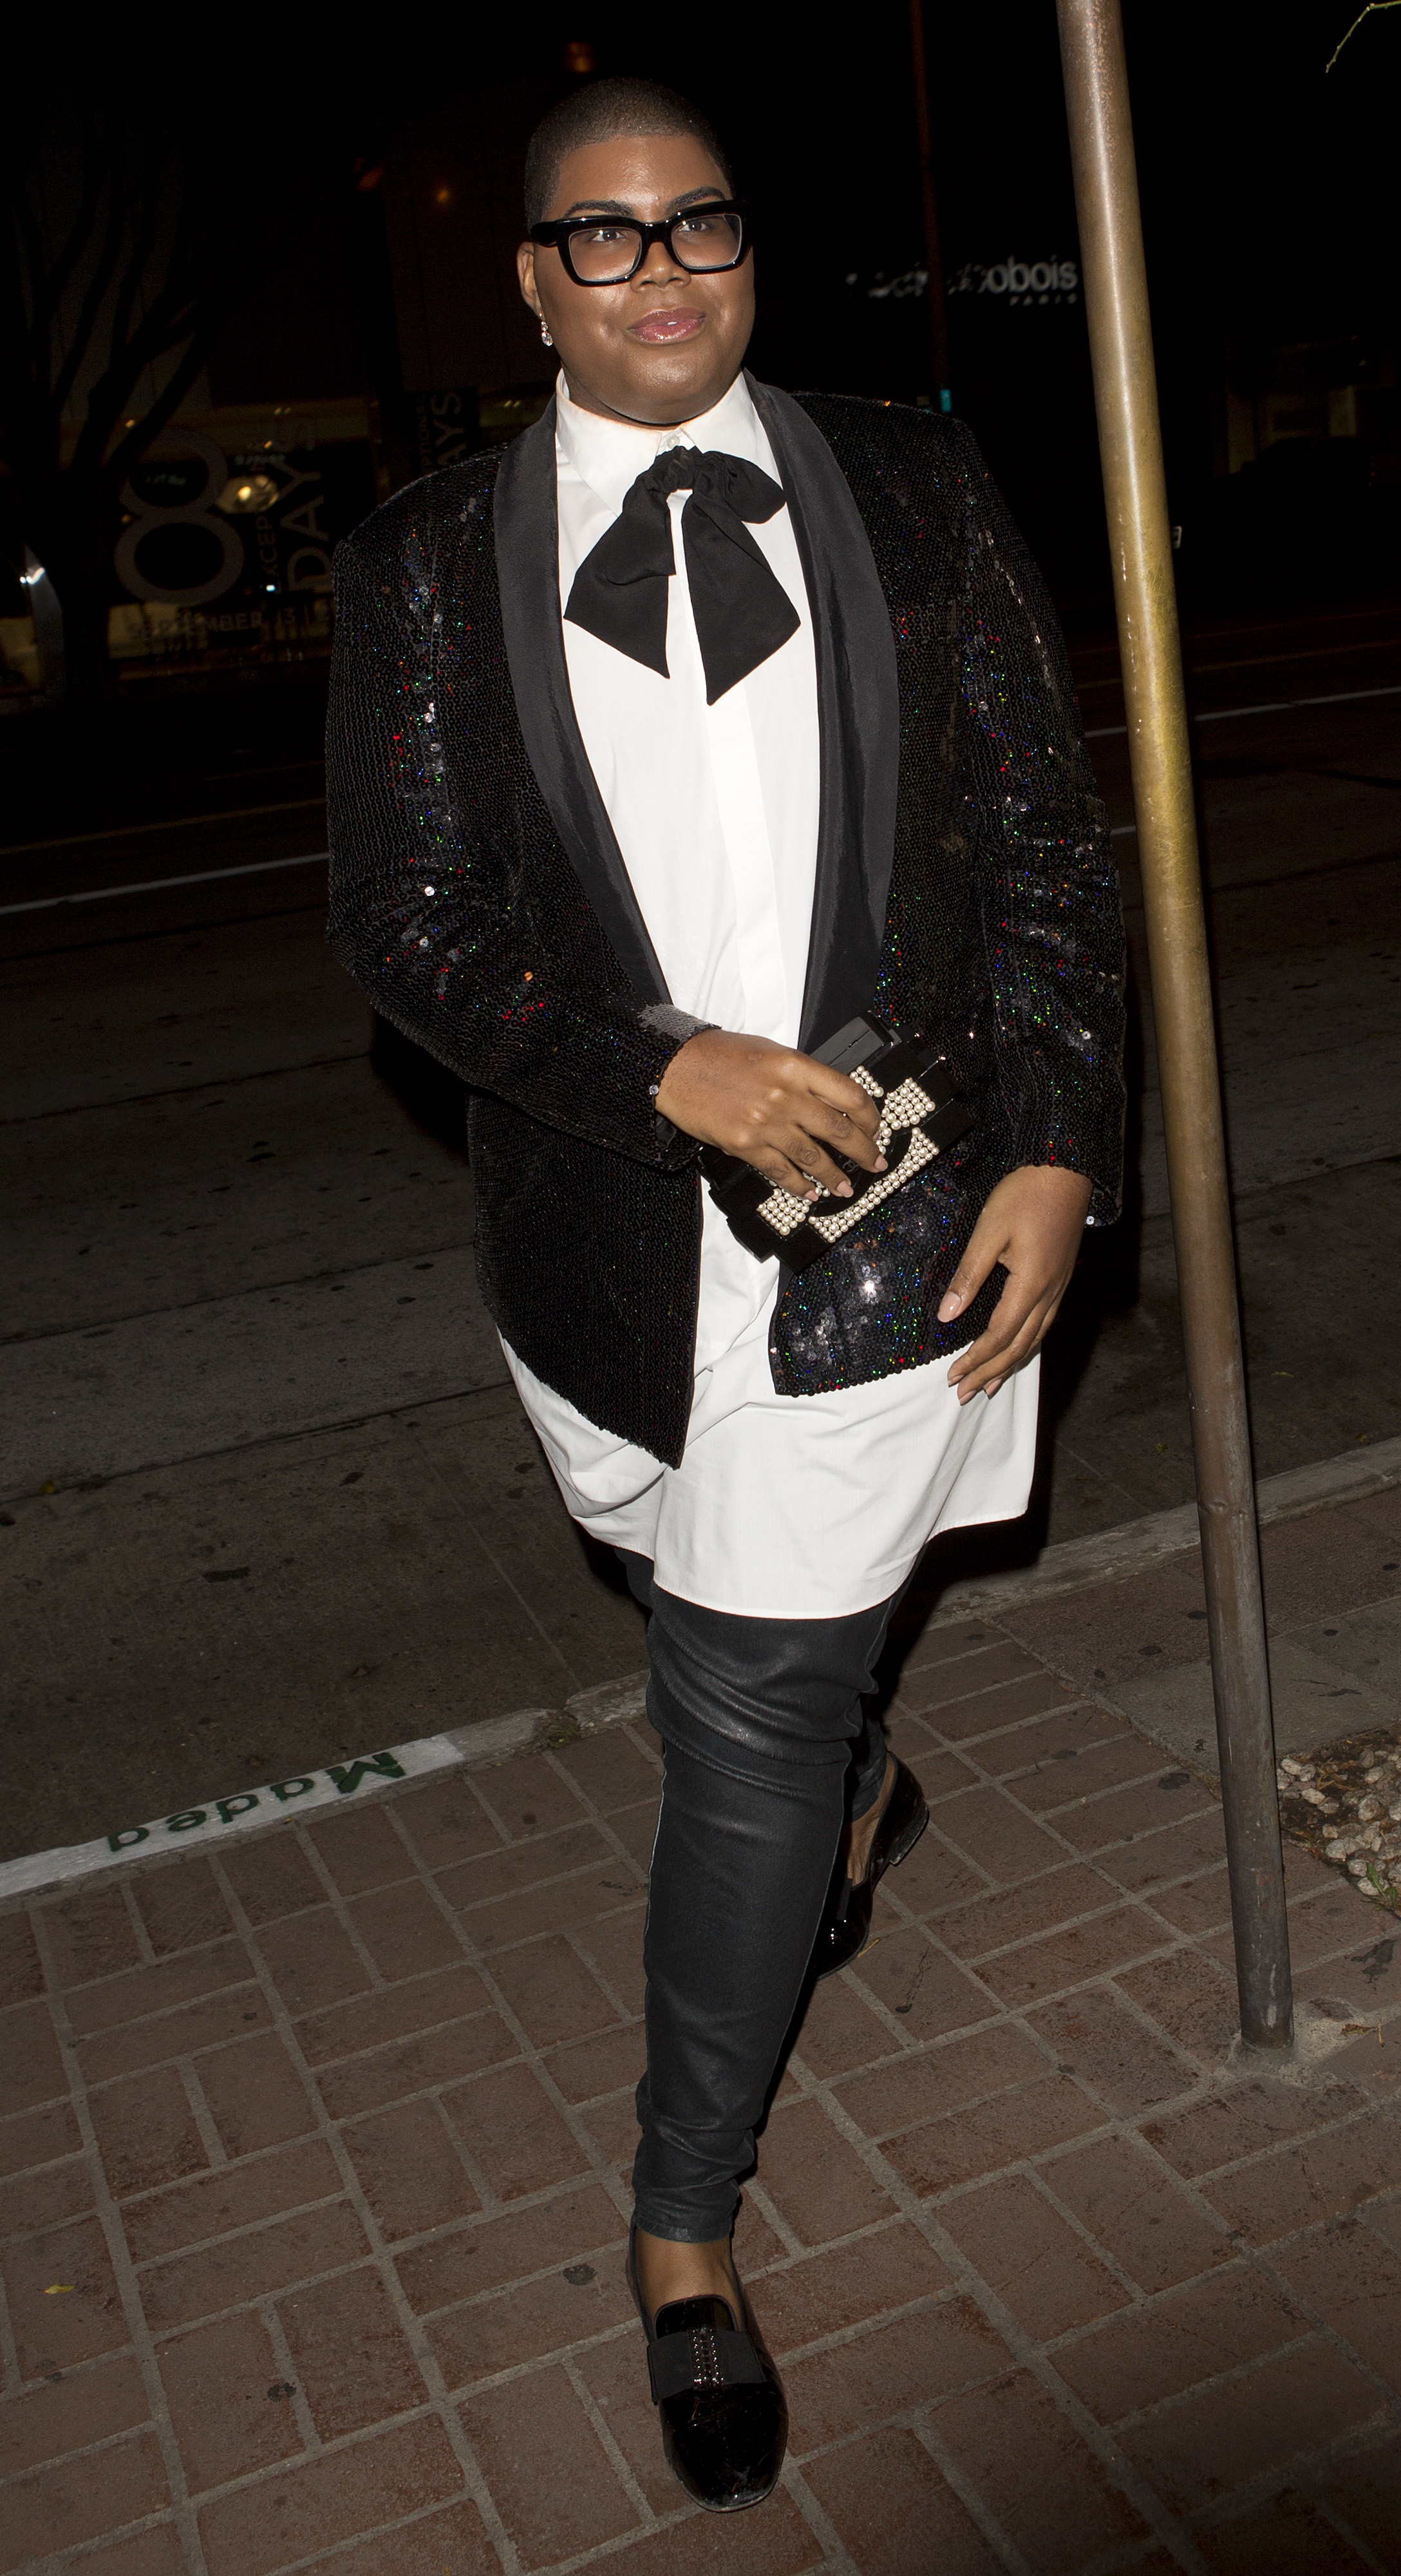 Dorothy Wang, EJ Johnson, Brendan Fitzpatrick and Morgan Stewart from 'The Rich Kids of Beverly Hills' TV show were seen arriving for dinner at Madeo Italian Restaurant in West Hollywood, CA